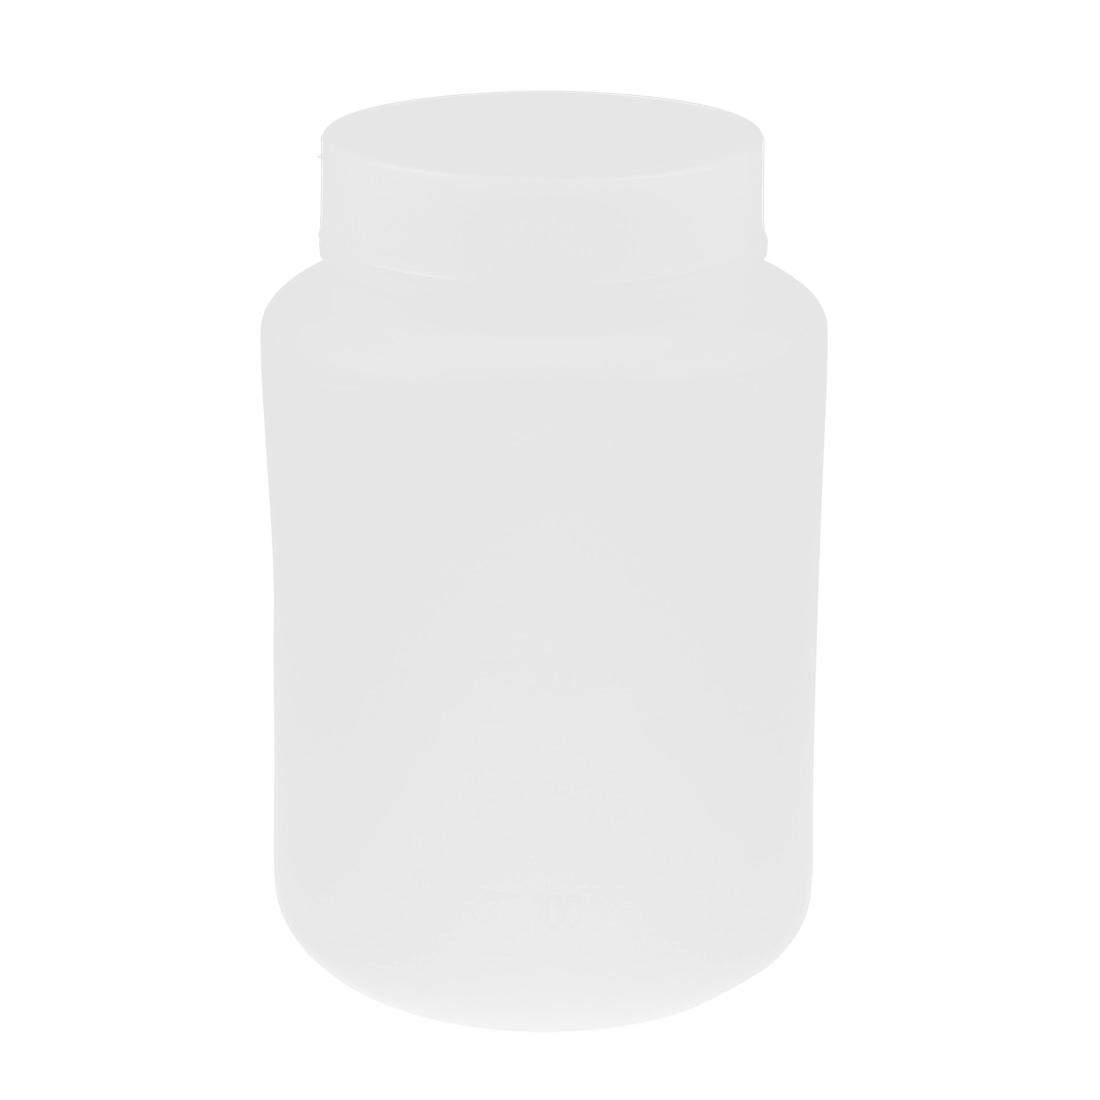 Lab Screw Lid White Plastic Wide Mouth Graduated Chemicals Storage Container Reagent Bottle 500mL